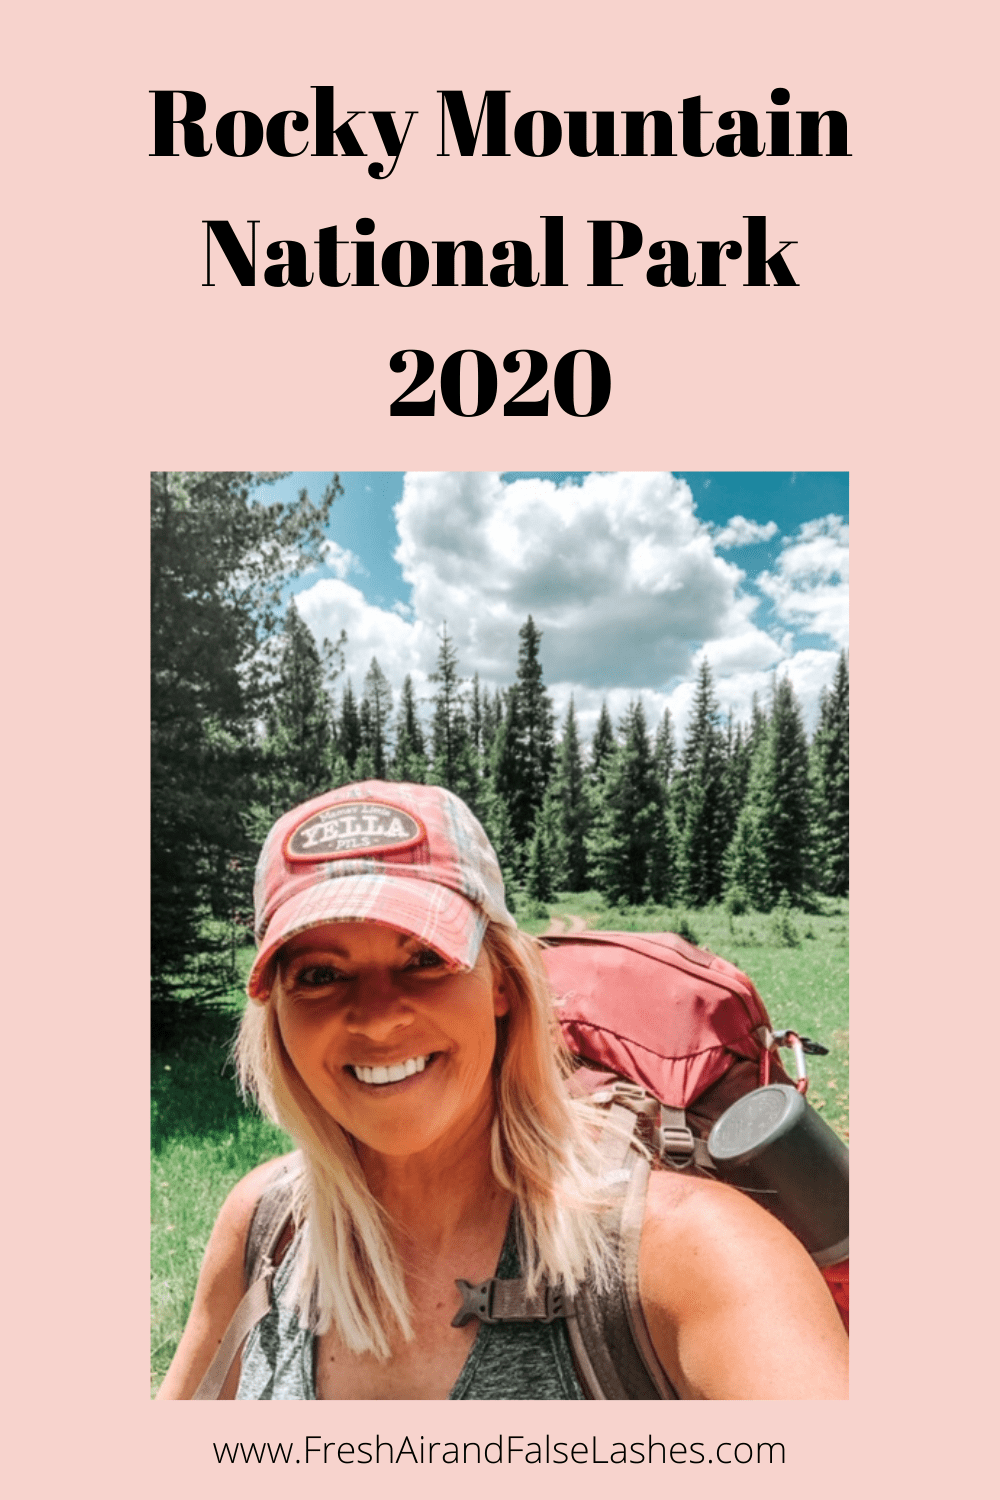 Rocky Mountain National Park 2020